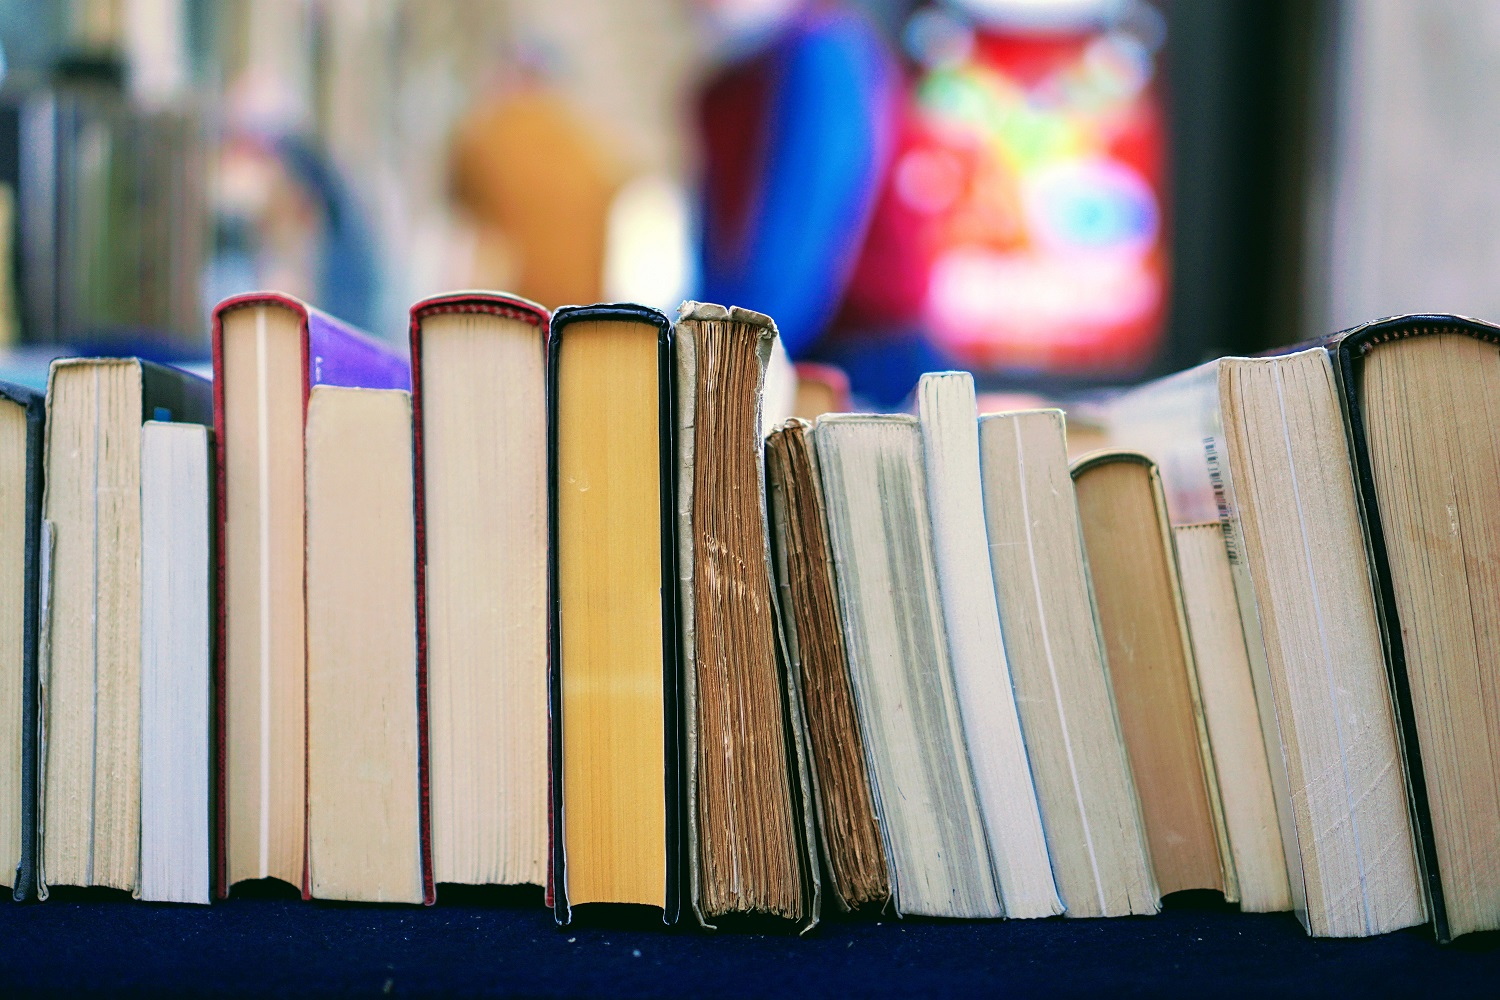 How Pandemic Affected My Book Reading Habit